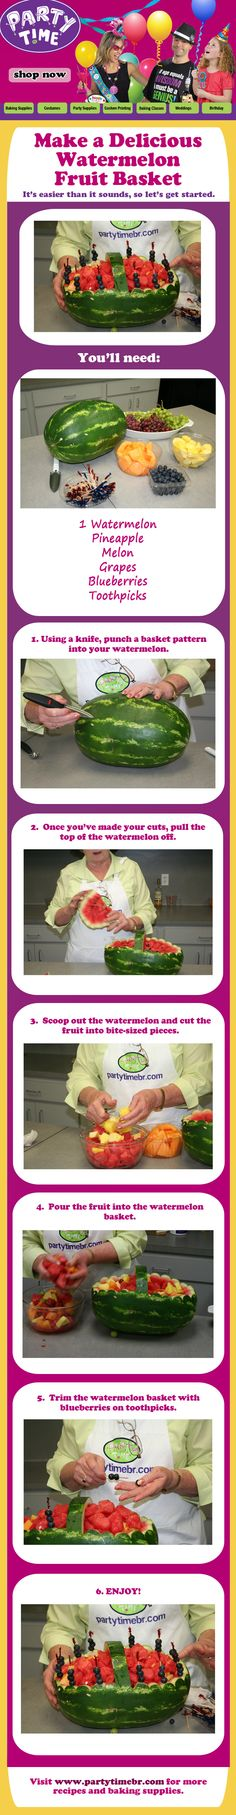 How to make a delicious watermelon fruit basket in six easy steps...